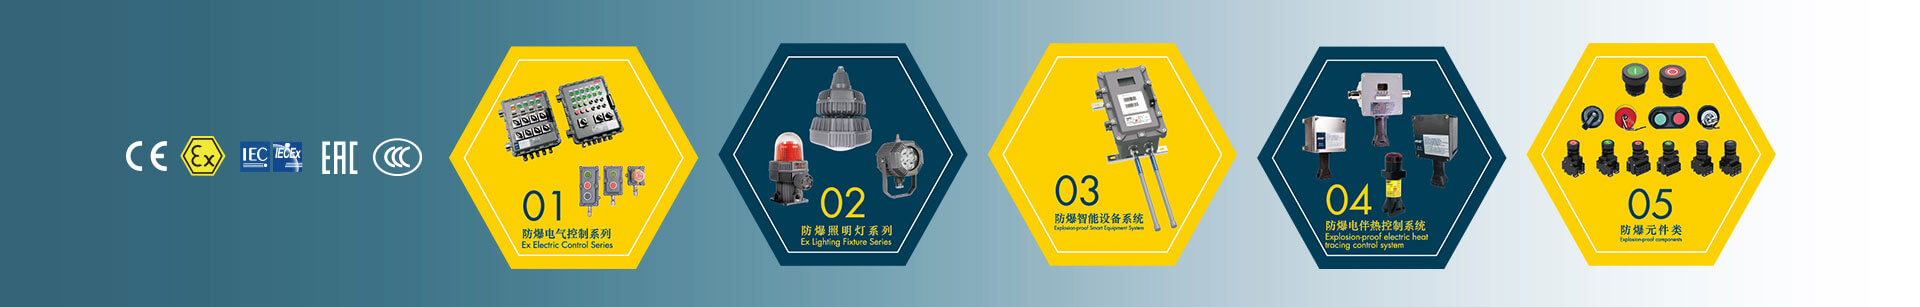 MAM Explosion-proof Technology (Shanghai)Co., Ltd.